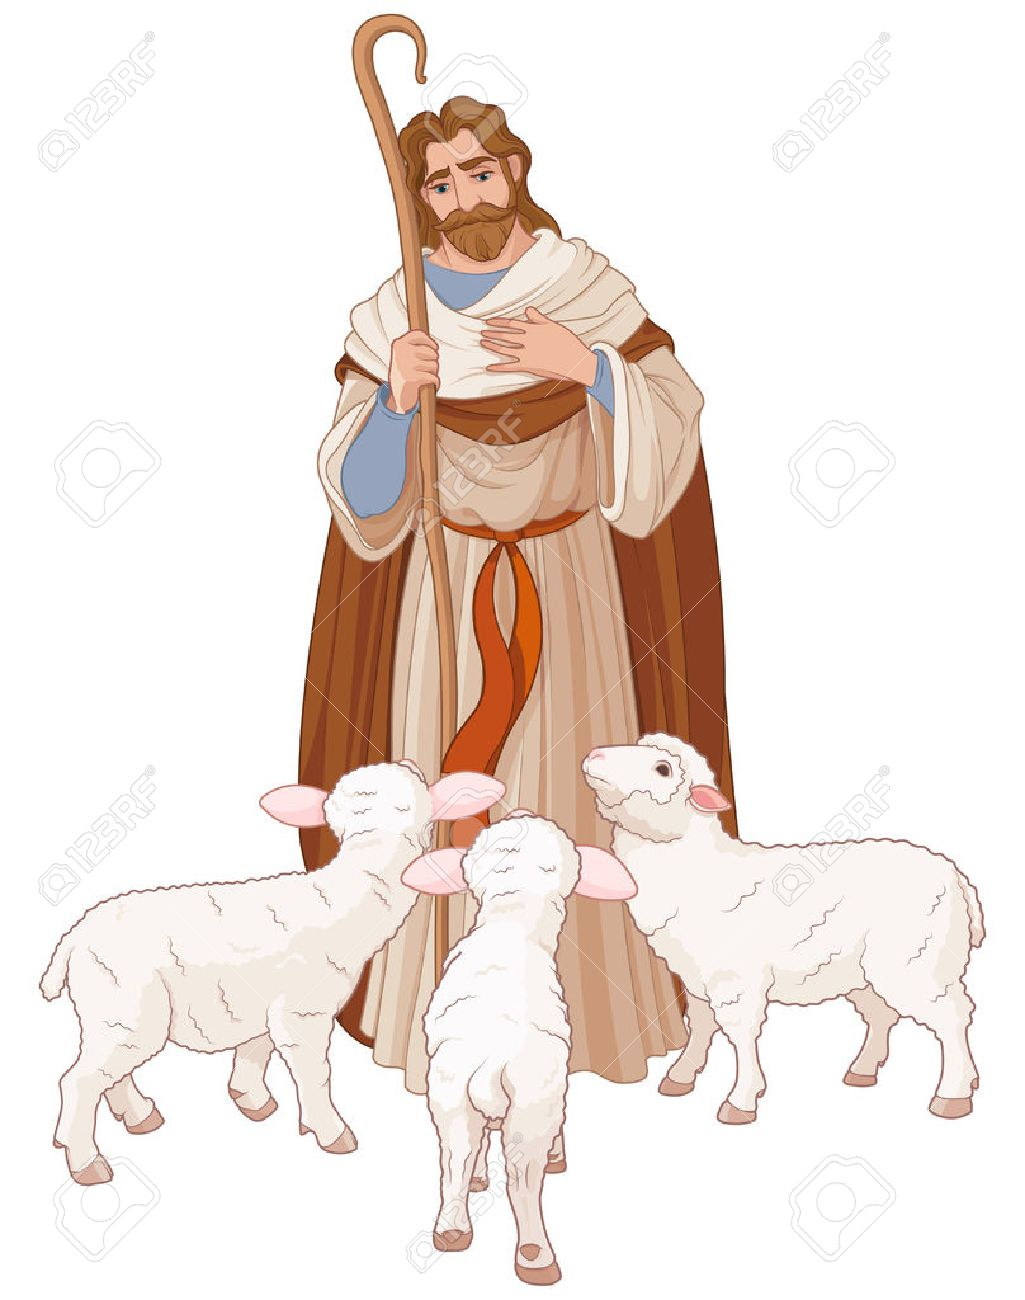 Illustration of Jesus Christ is the good shepherd.